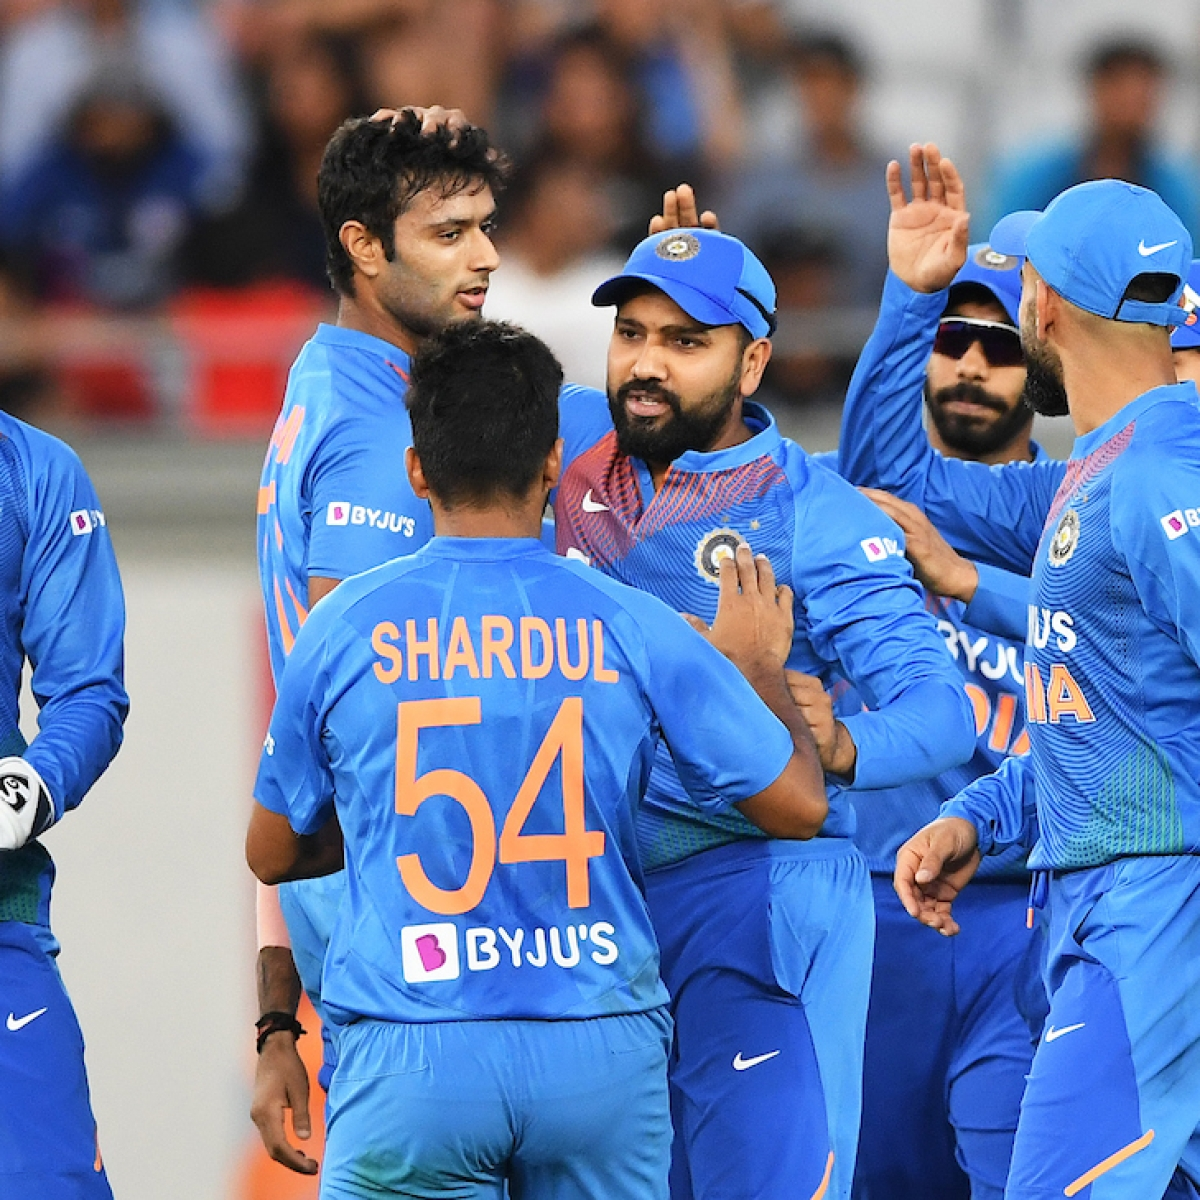 NZ vs IND 2nd T20I: When, where and how to watch live telecast